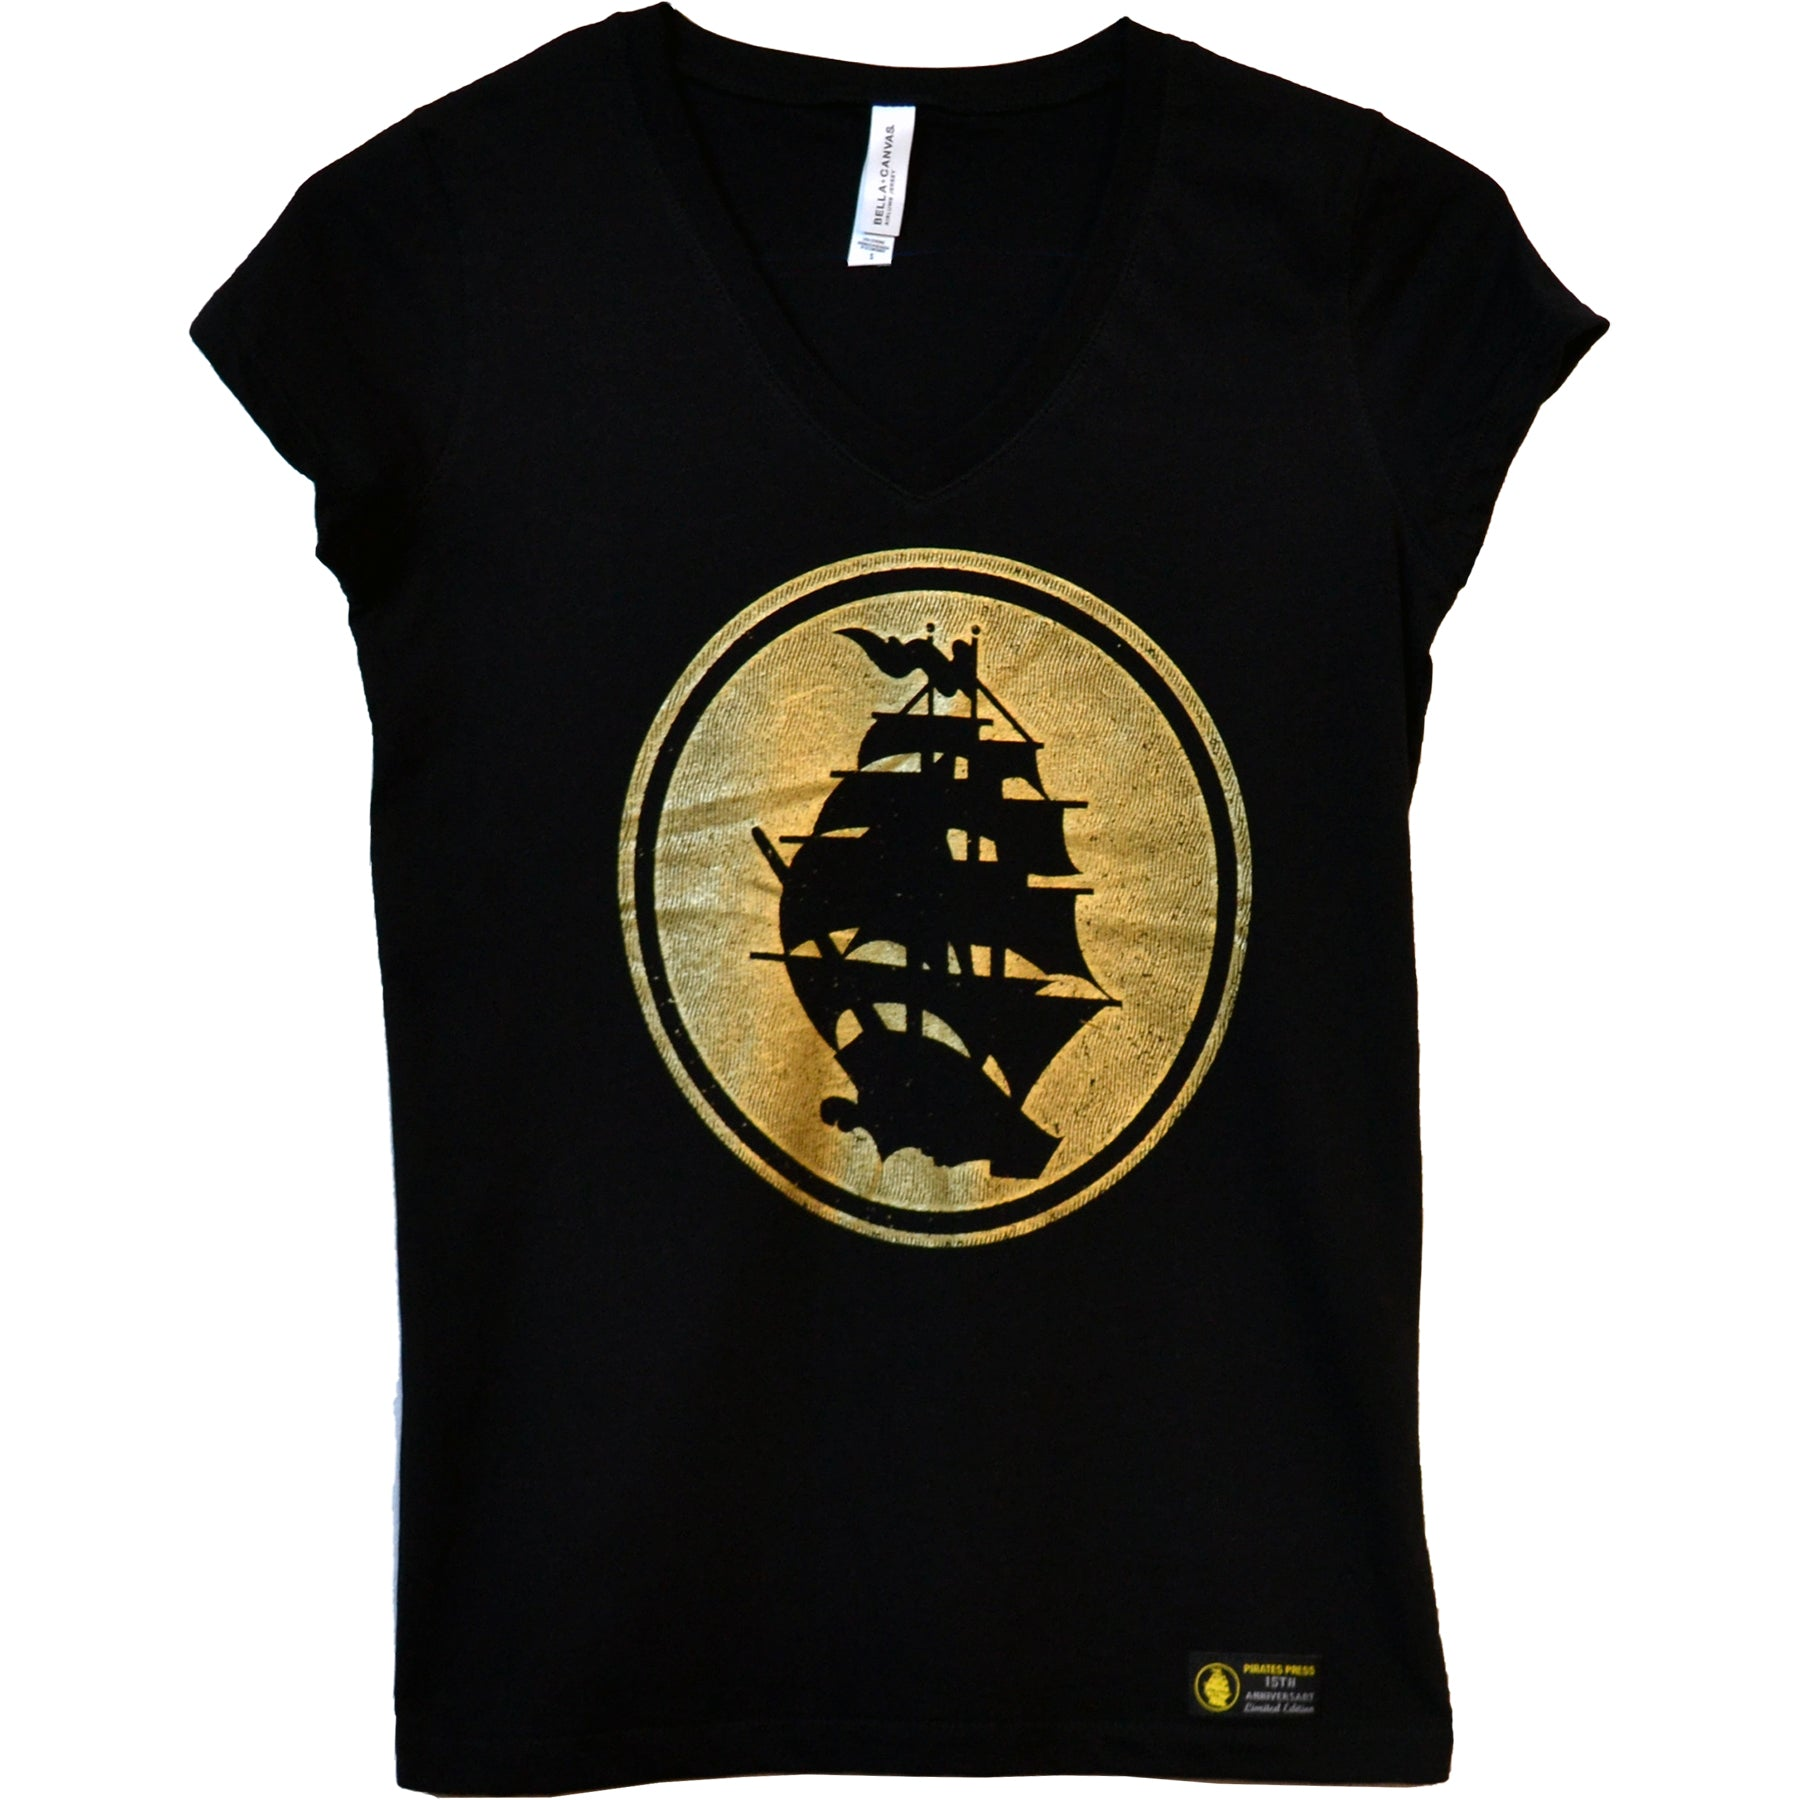 Pirates Press - Circle Logo - Gold on Black - 15 Year Tag - V-Neck T-Shirt - Fitted